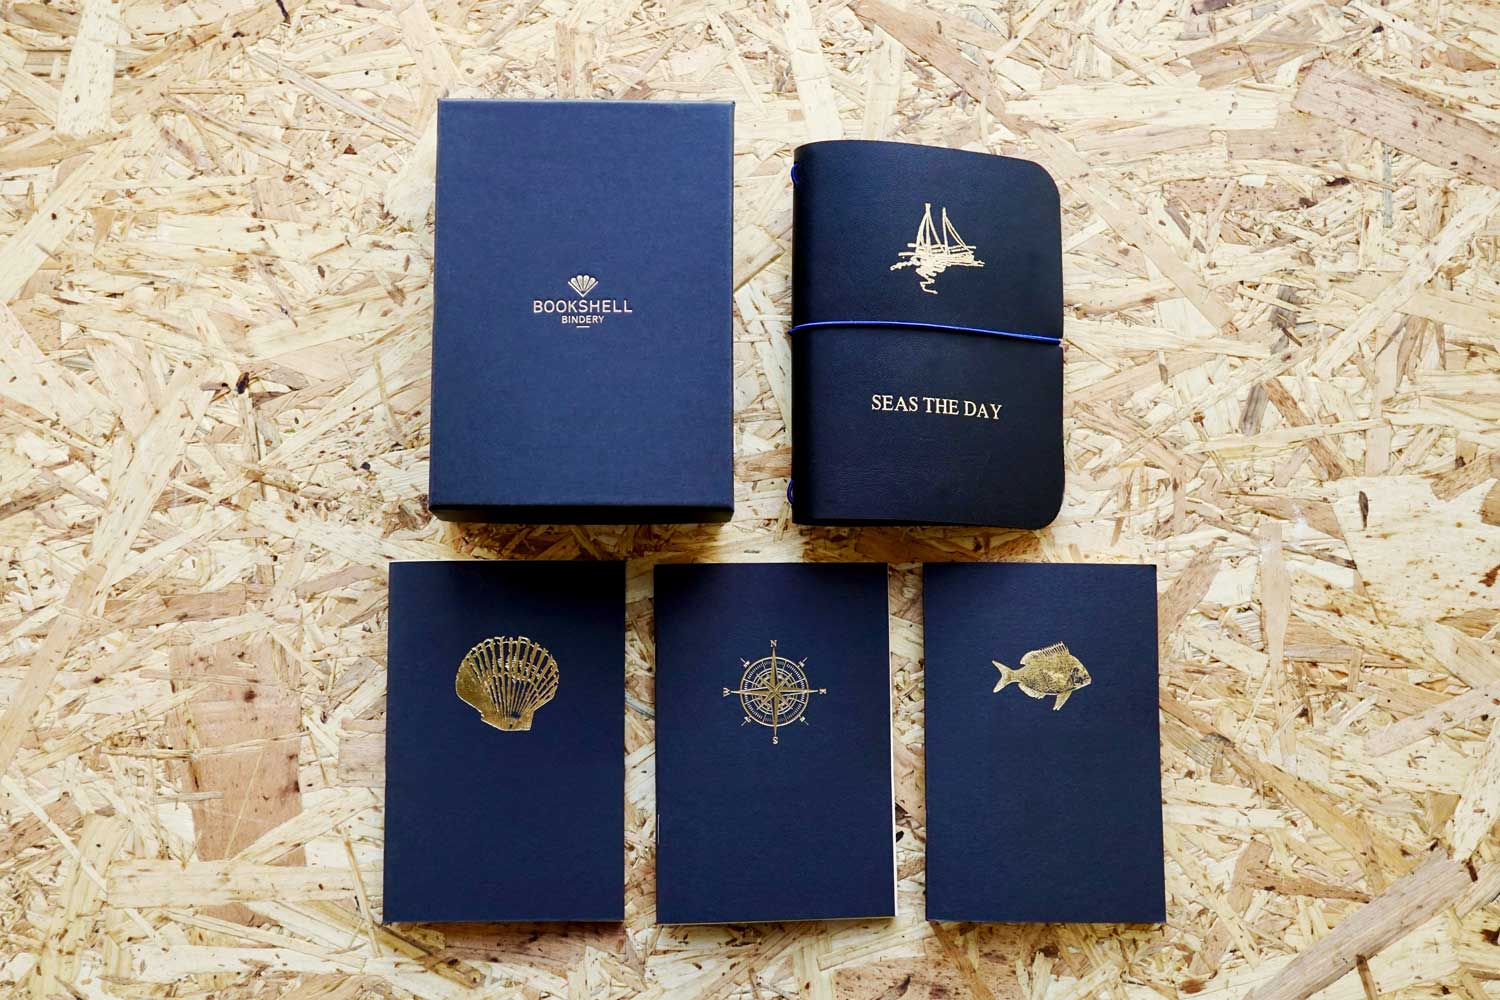 Never-ending journal - Seas the day, leather travel journal, A6 pocket size with boat illustration embossed in gold foil onto the cover, this photo shows all 3 inner notebooks with a shell, fish and compass illustration on the covers